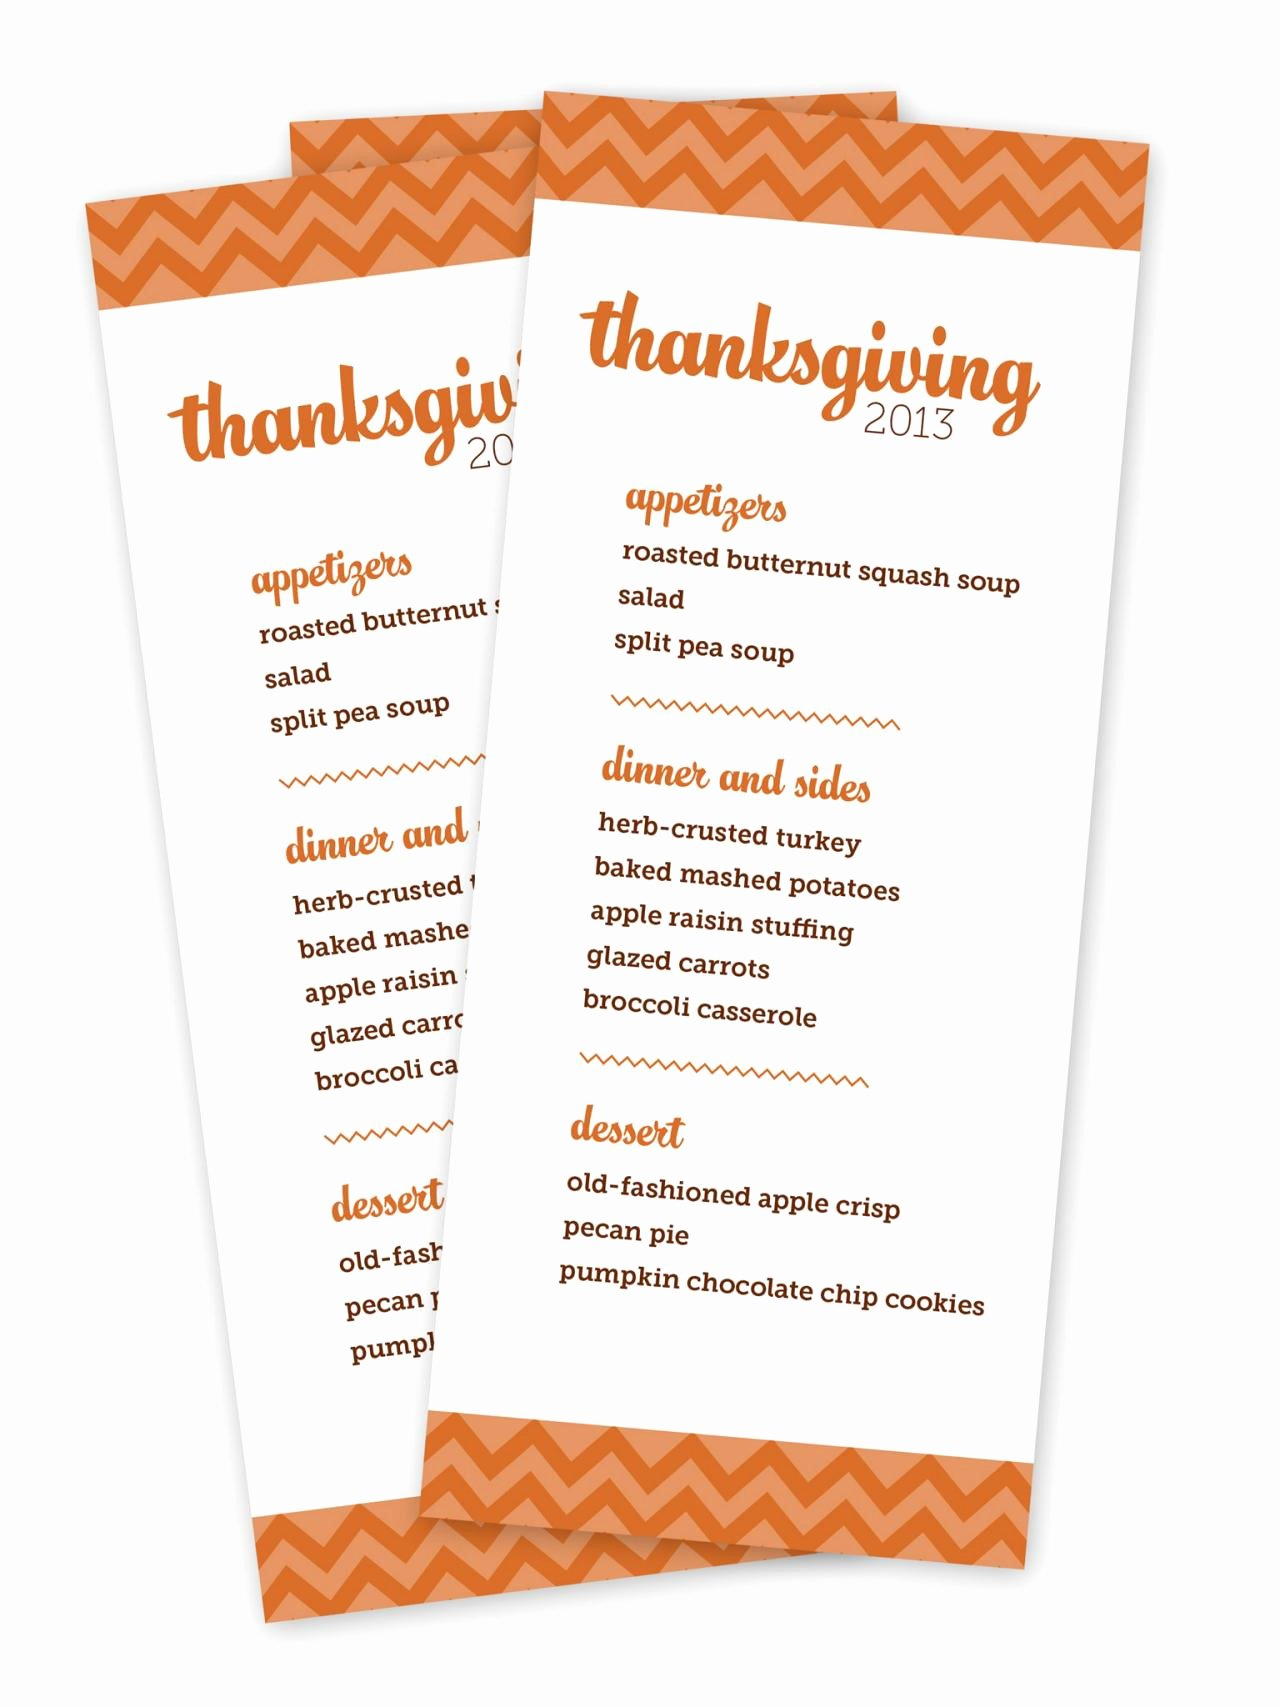 Dinner Menu Template Word Inspirational Thanksgiving Menu Templates with Words – Happy Easter